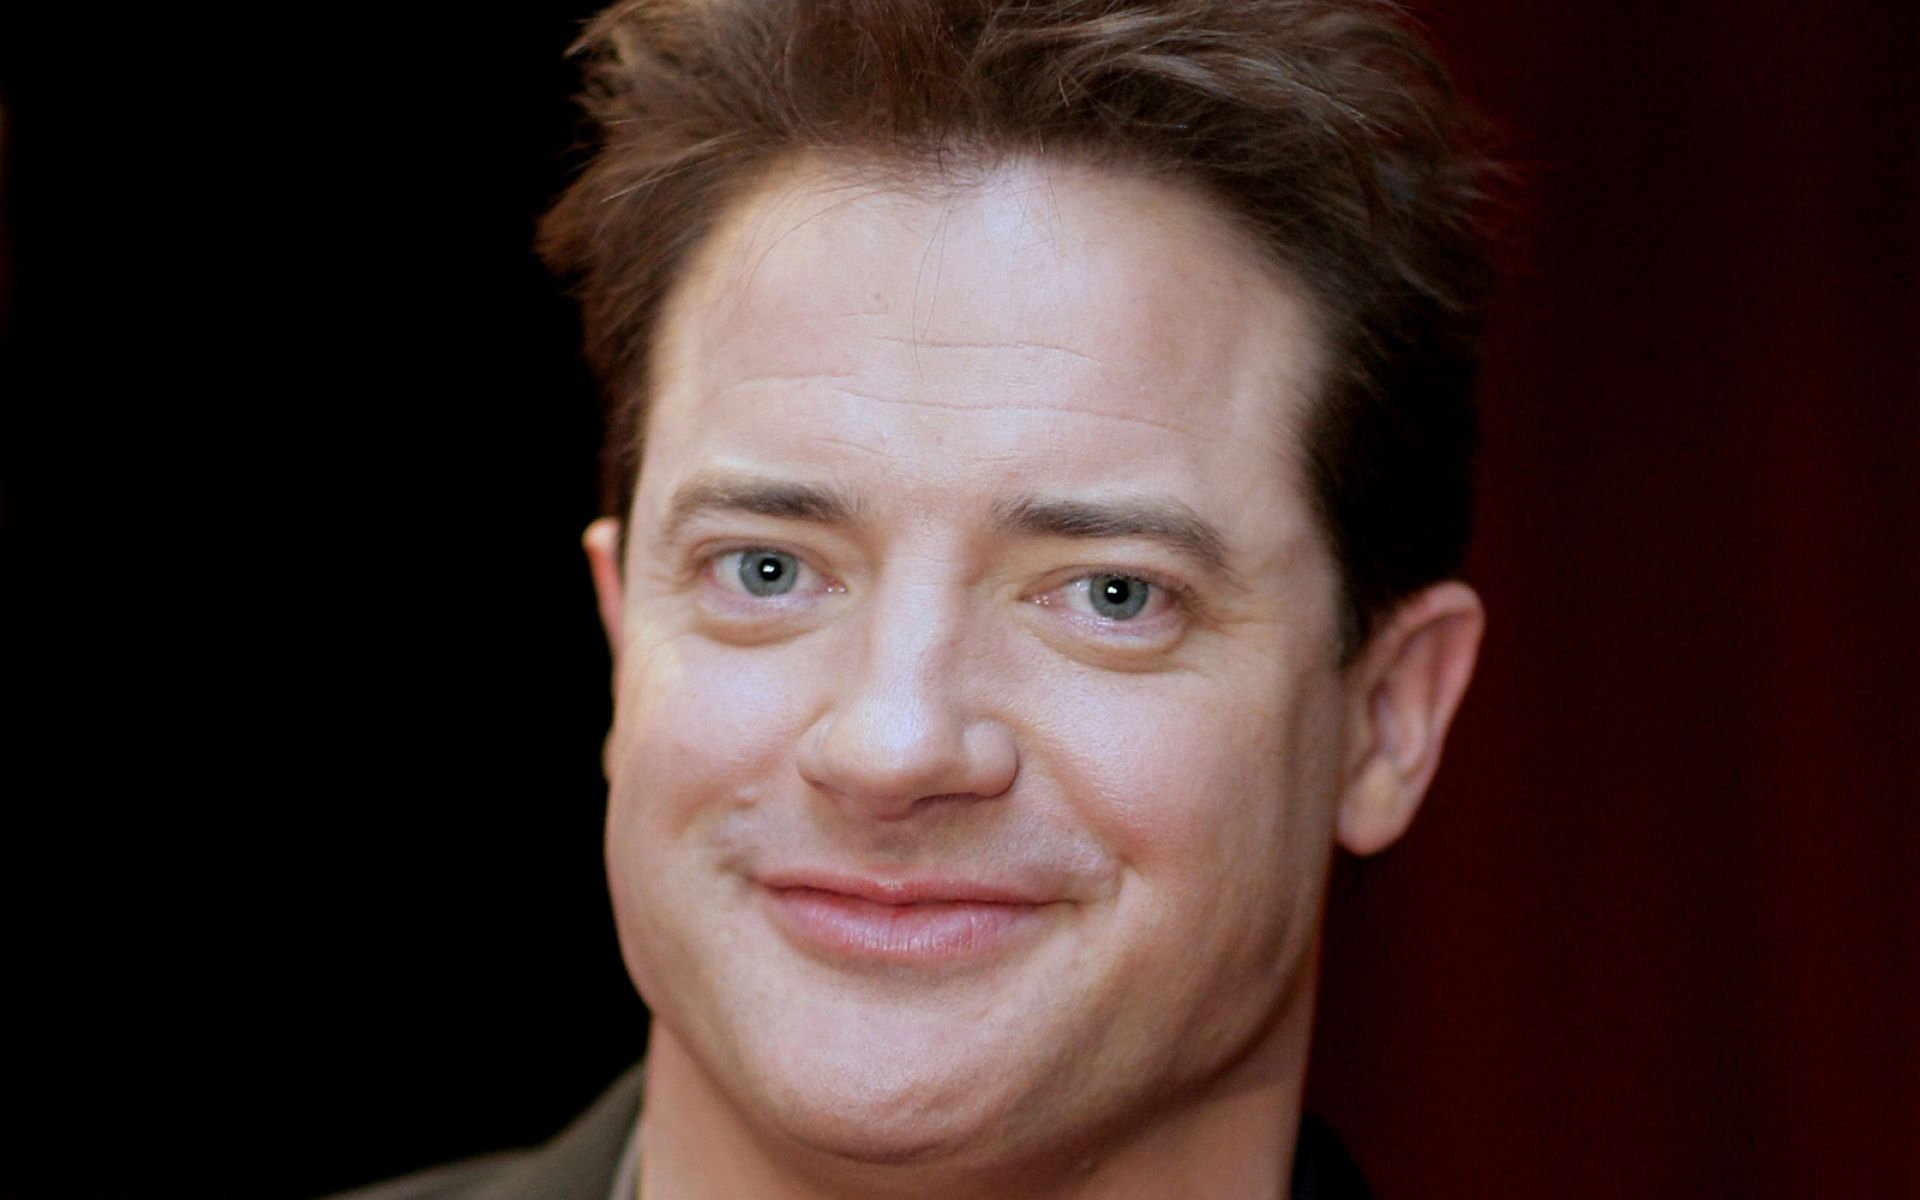 Brendan Fraser Celebrity Wallpaper HD Wallpaper